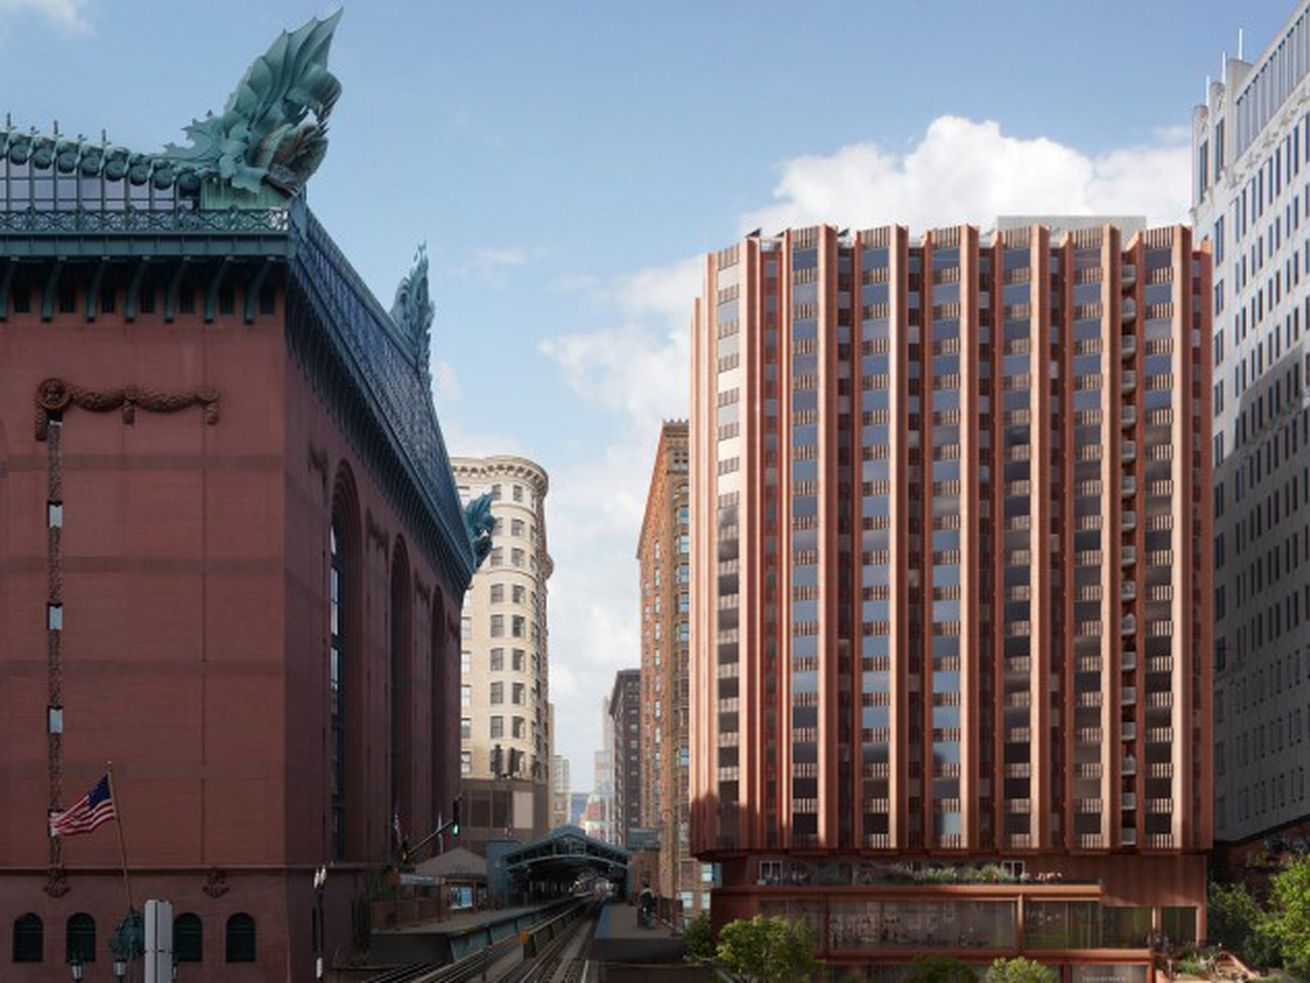 The 20-story building proposed by The Community Builders and Studio Gang is on the right in this rendering. On the left is the Harold Washington Library.